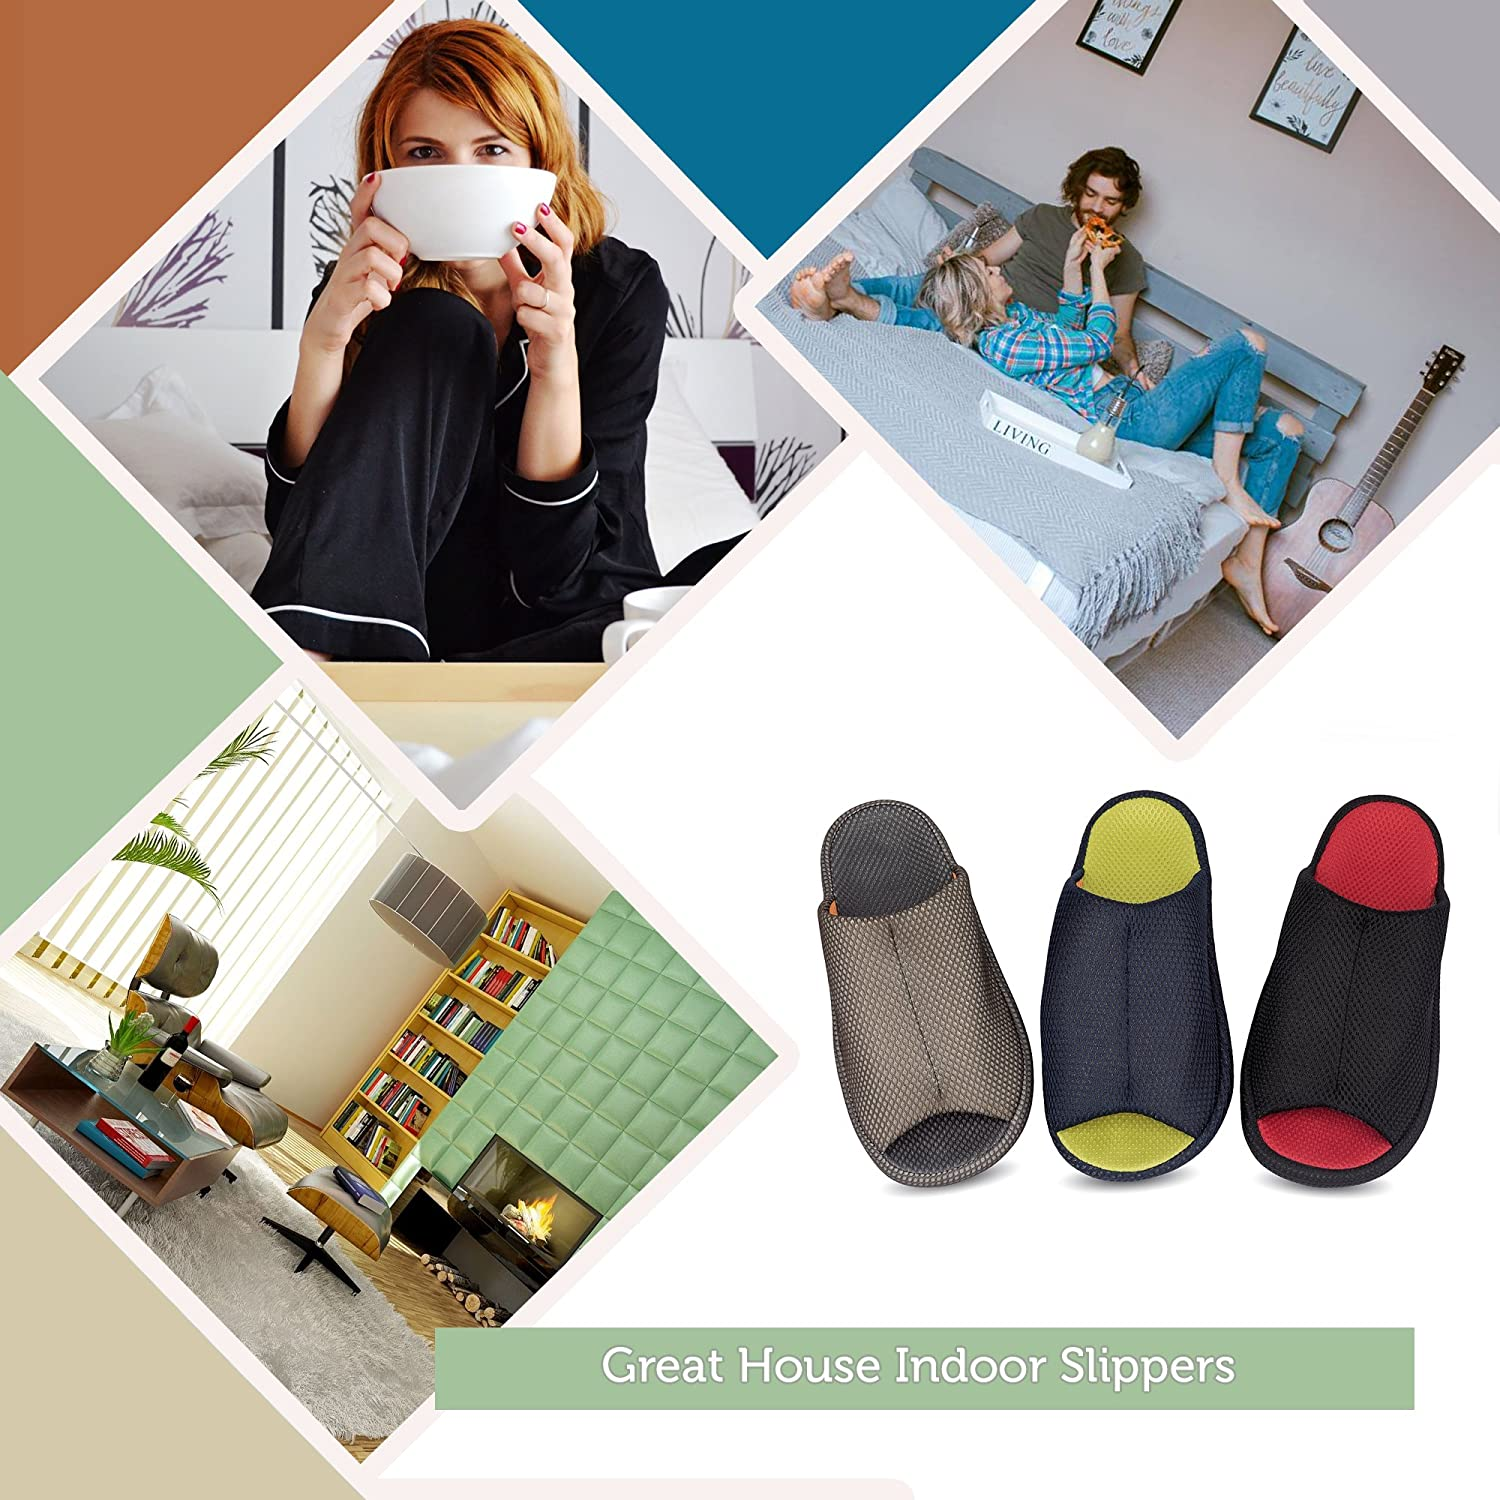 RelaxedFoot Slippers Indoor Outdoor 1 Pair Storage Bag